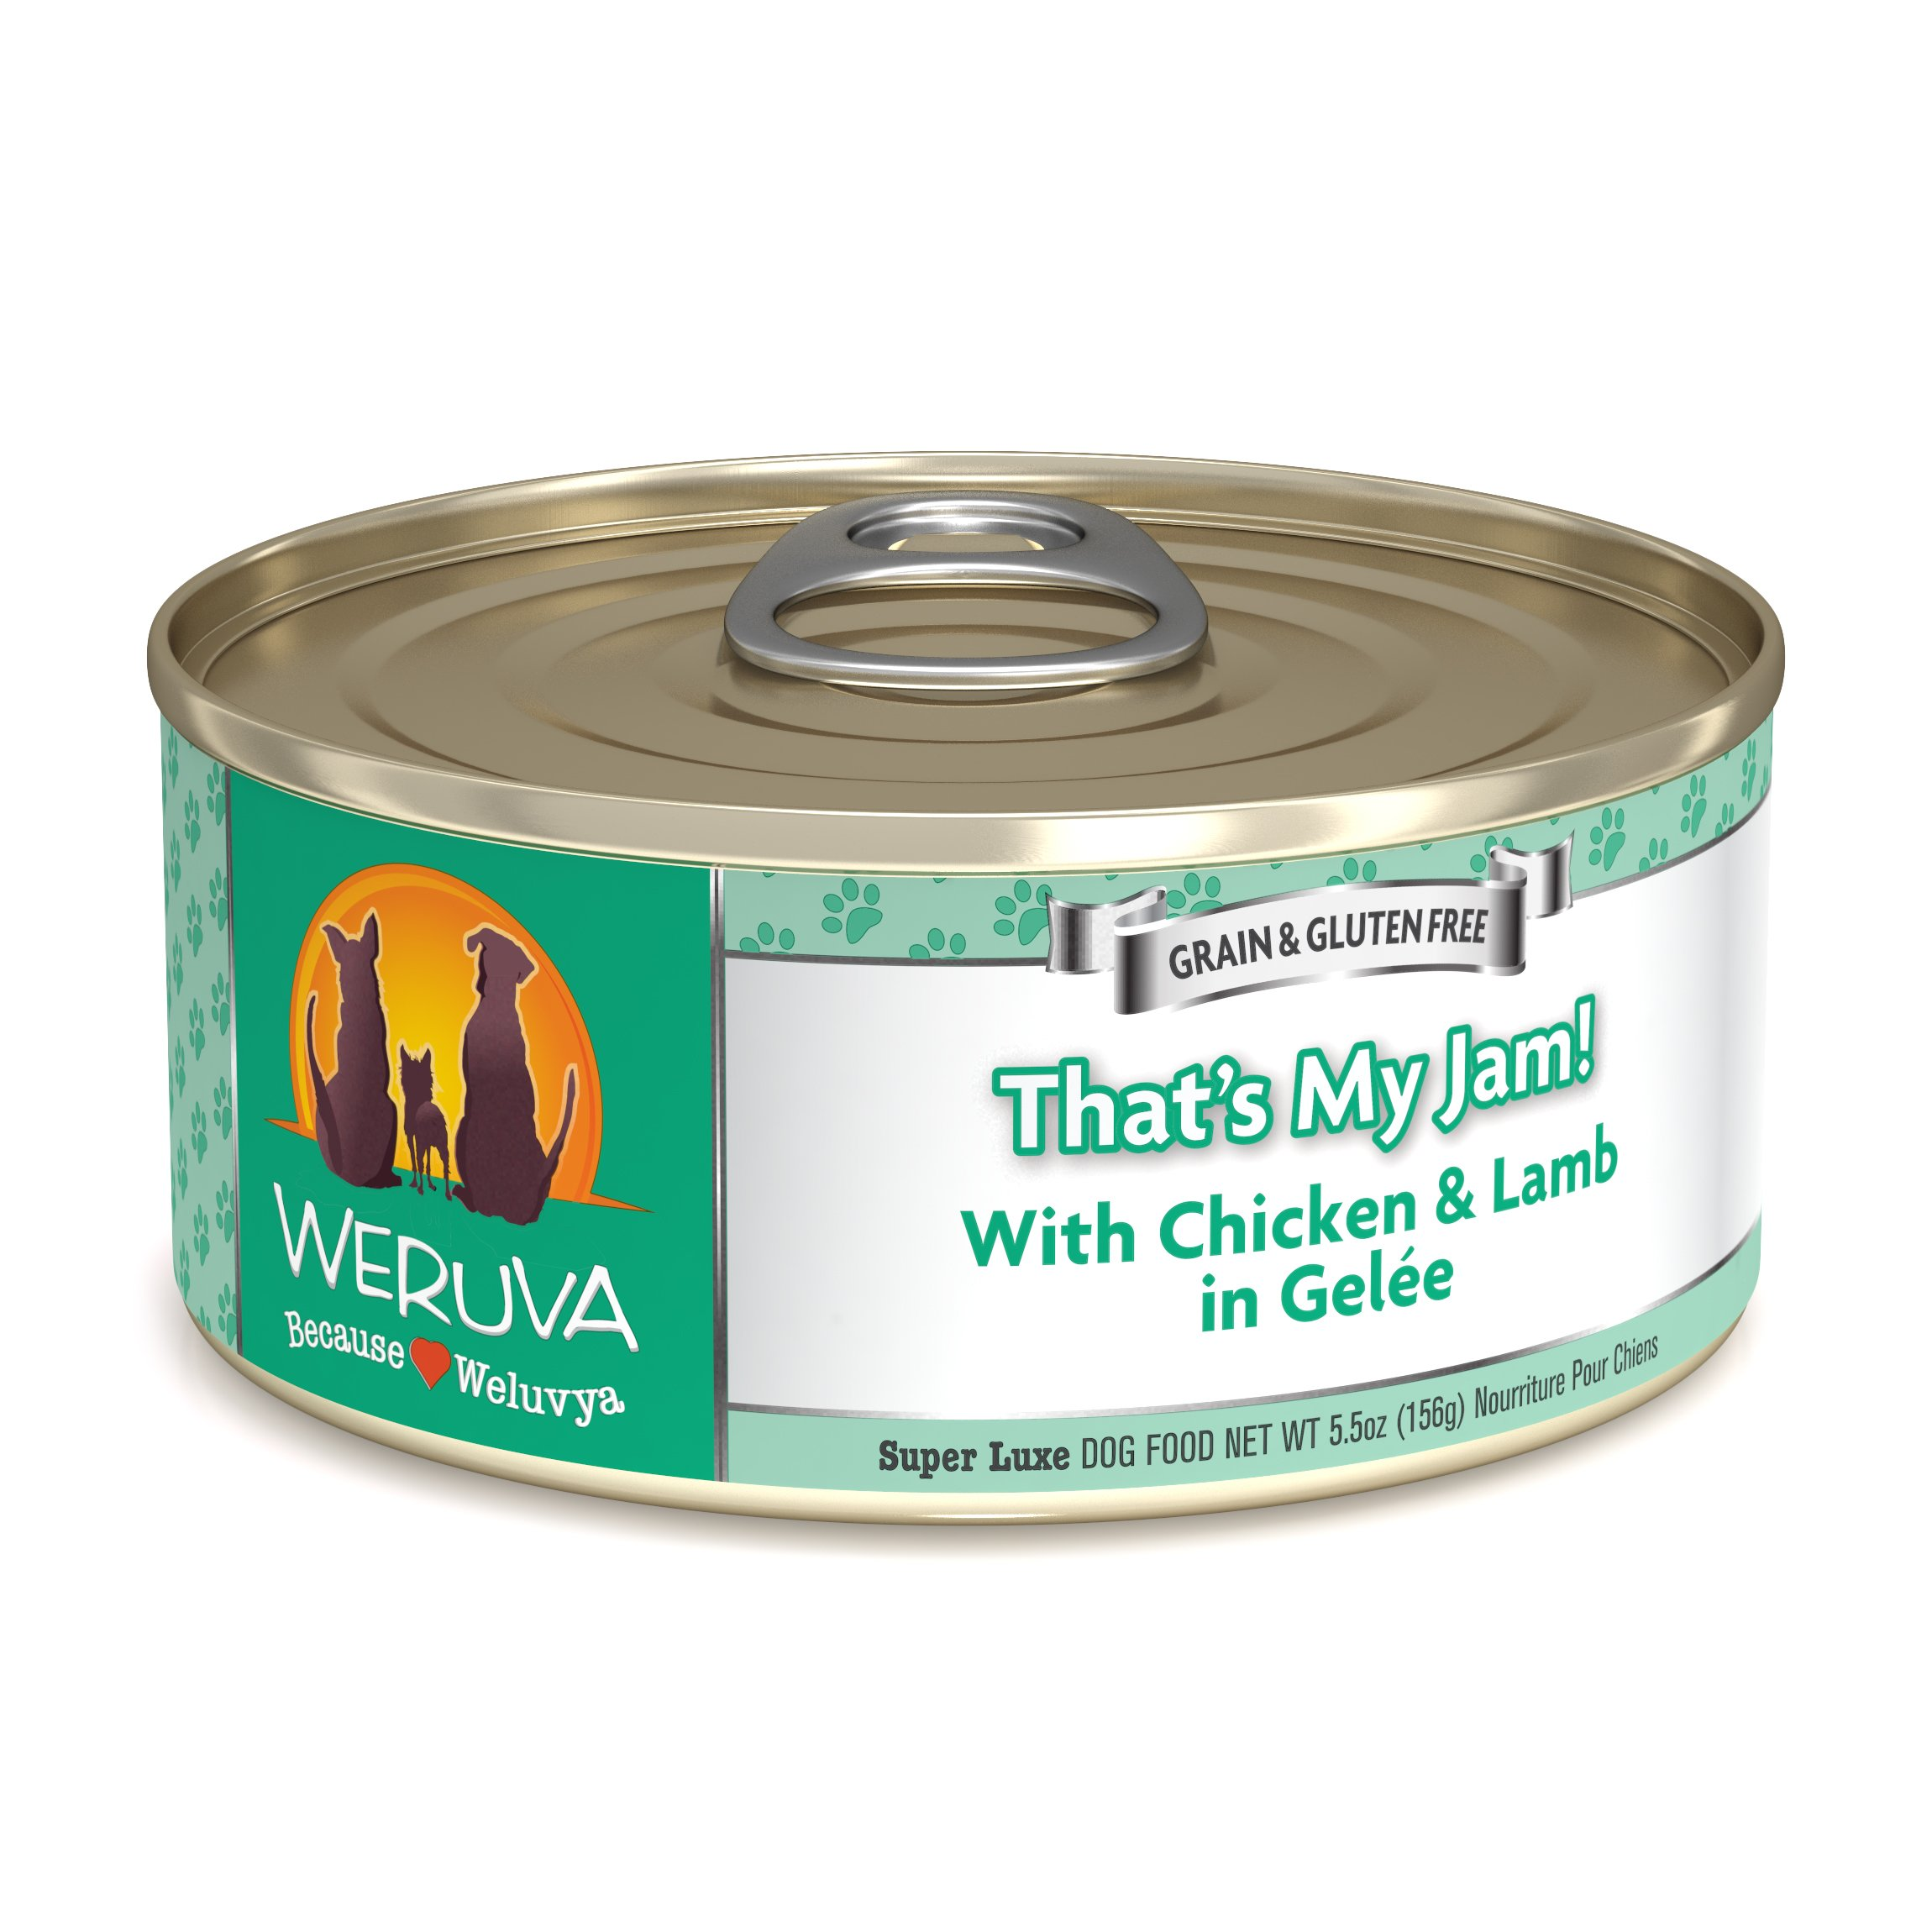 Weruva Classic Dog Food, That's My Jam! with Chicken & Lamb in Gelée, 5.5oz Can (Pack of 24)